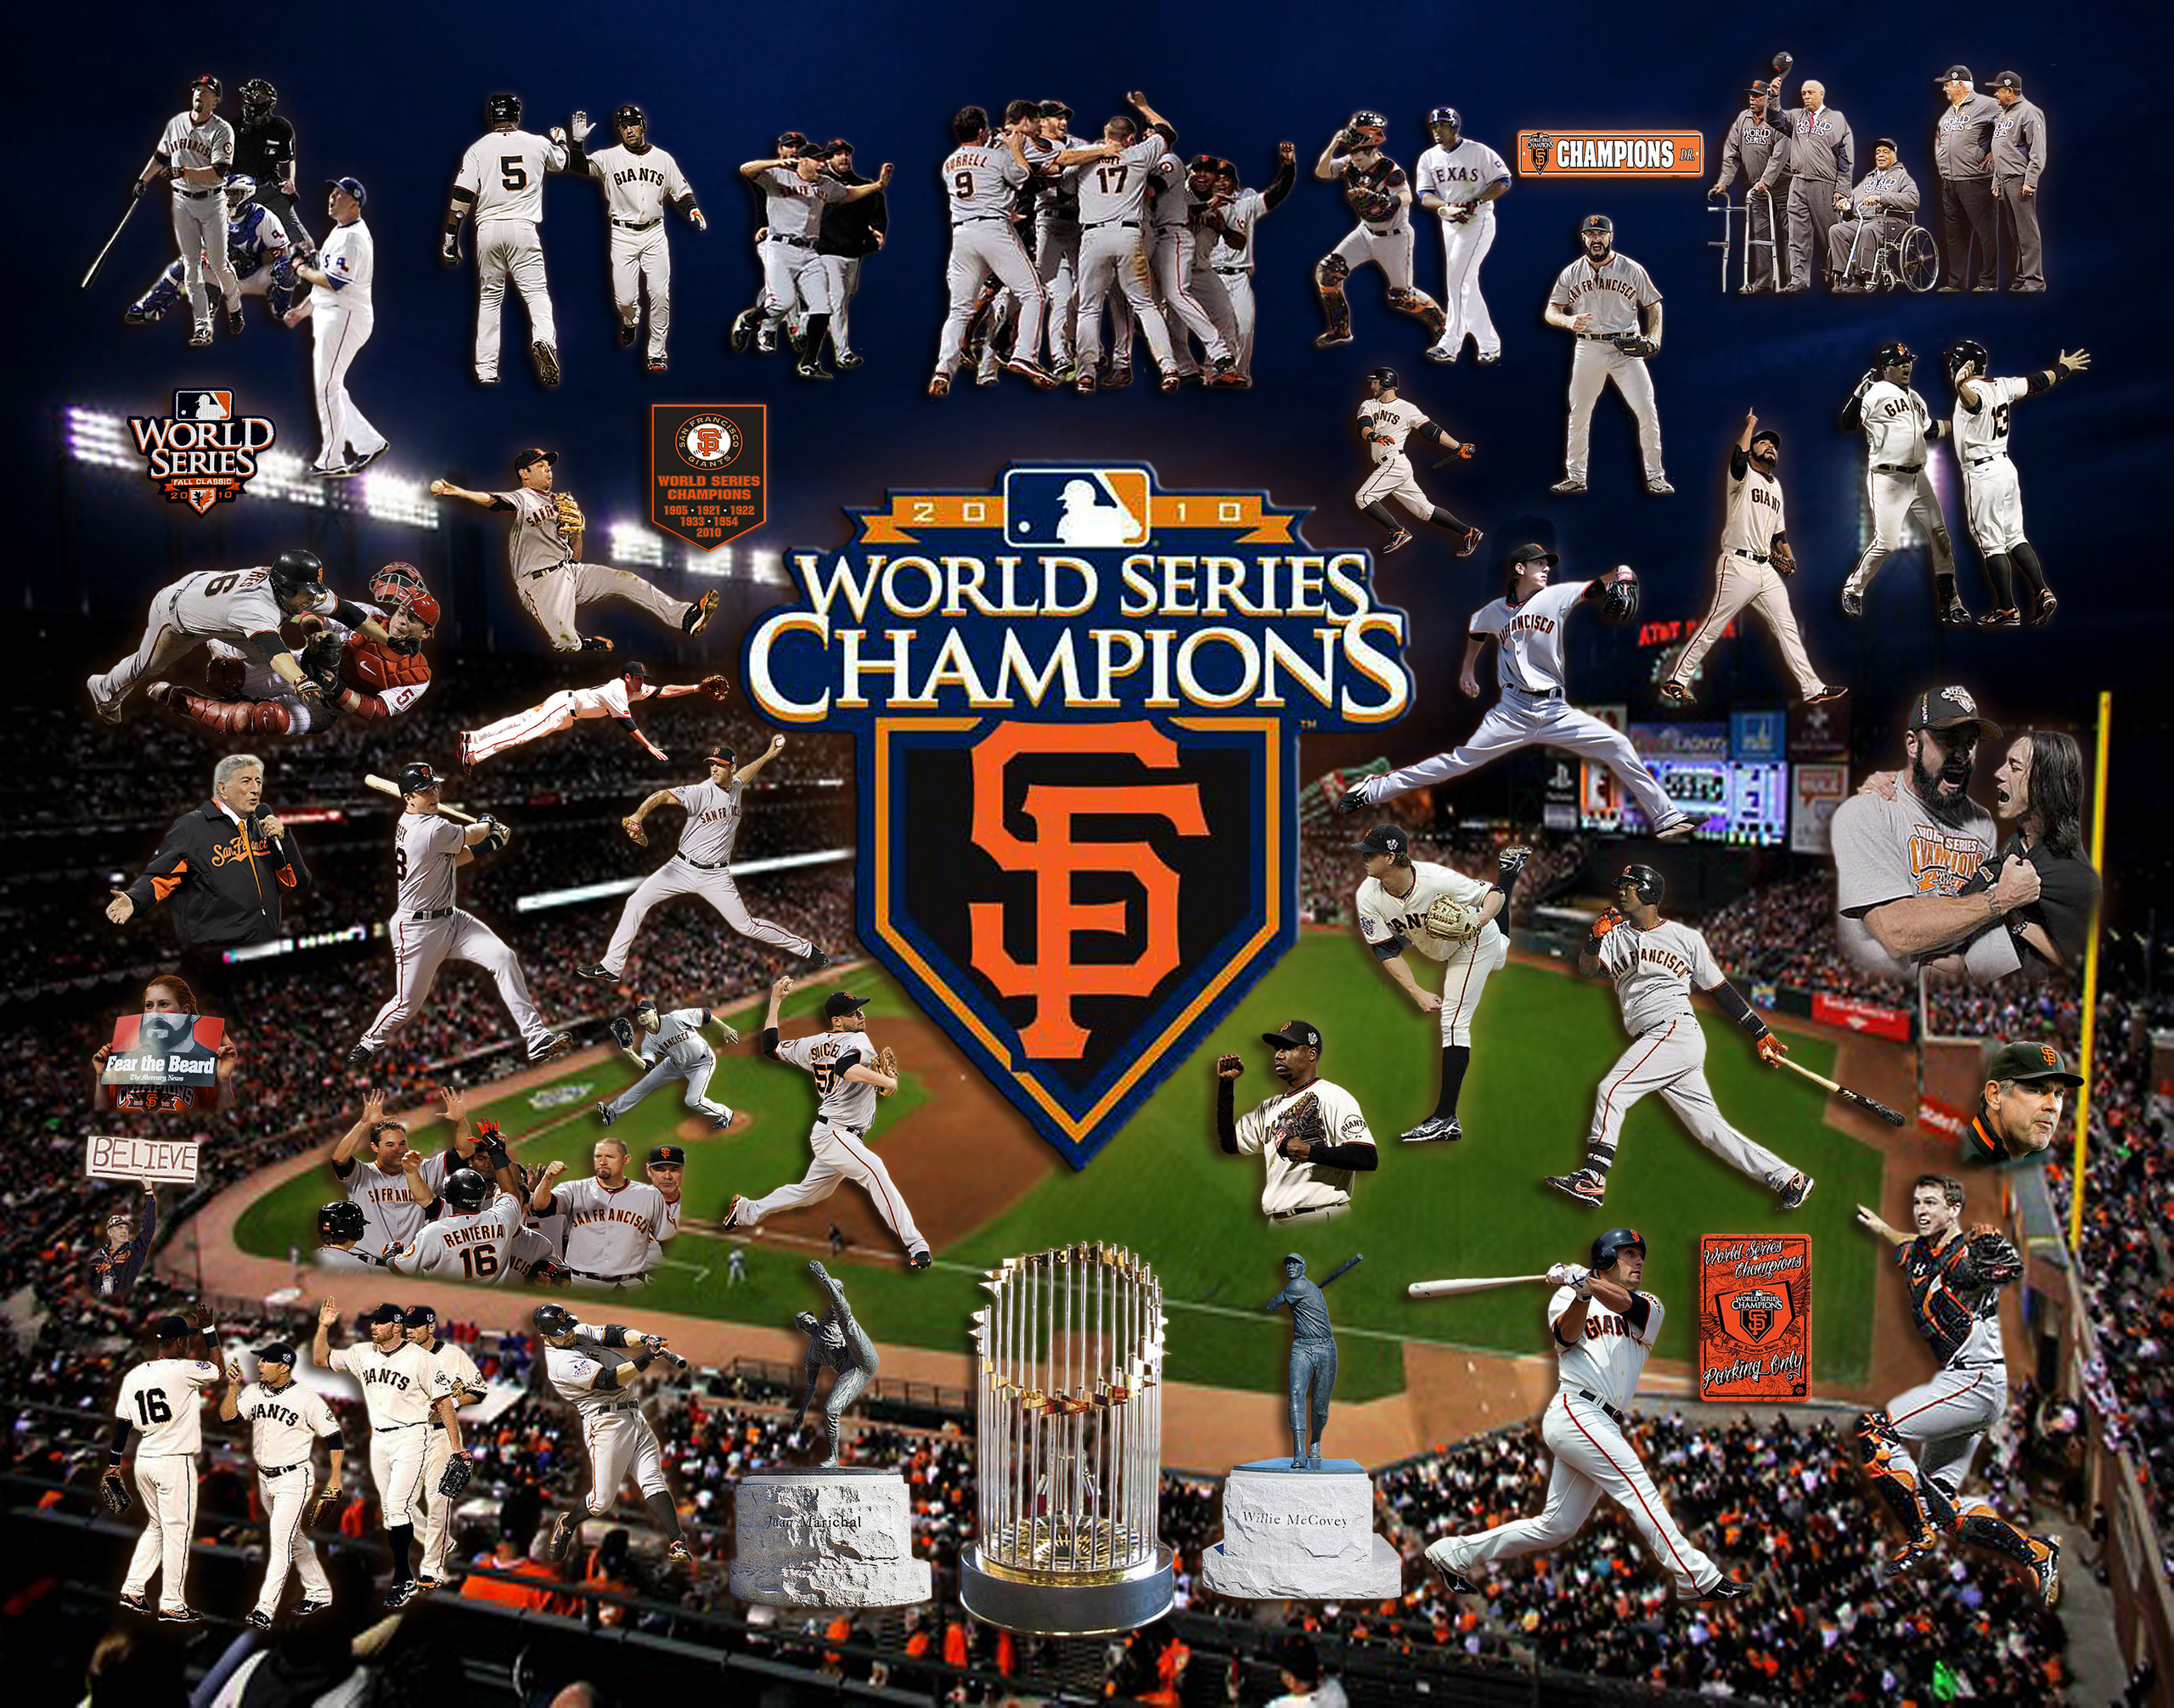 baseball images sf giants champions!!! hd wallpaper and background